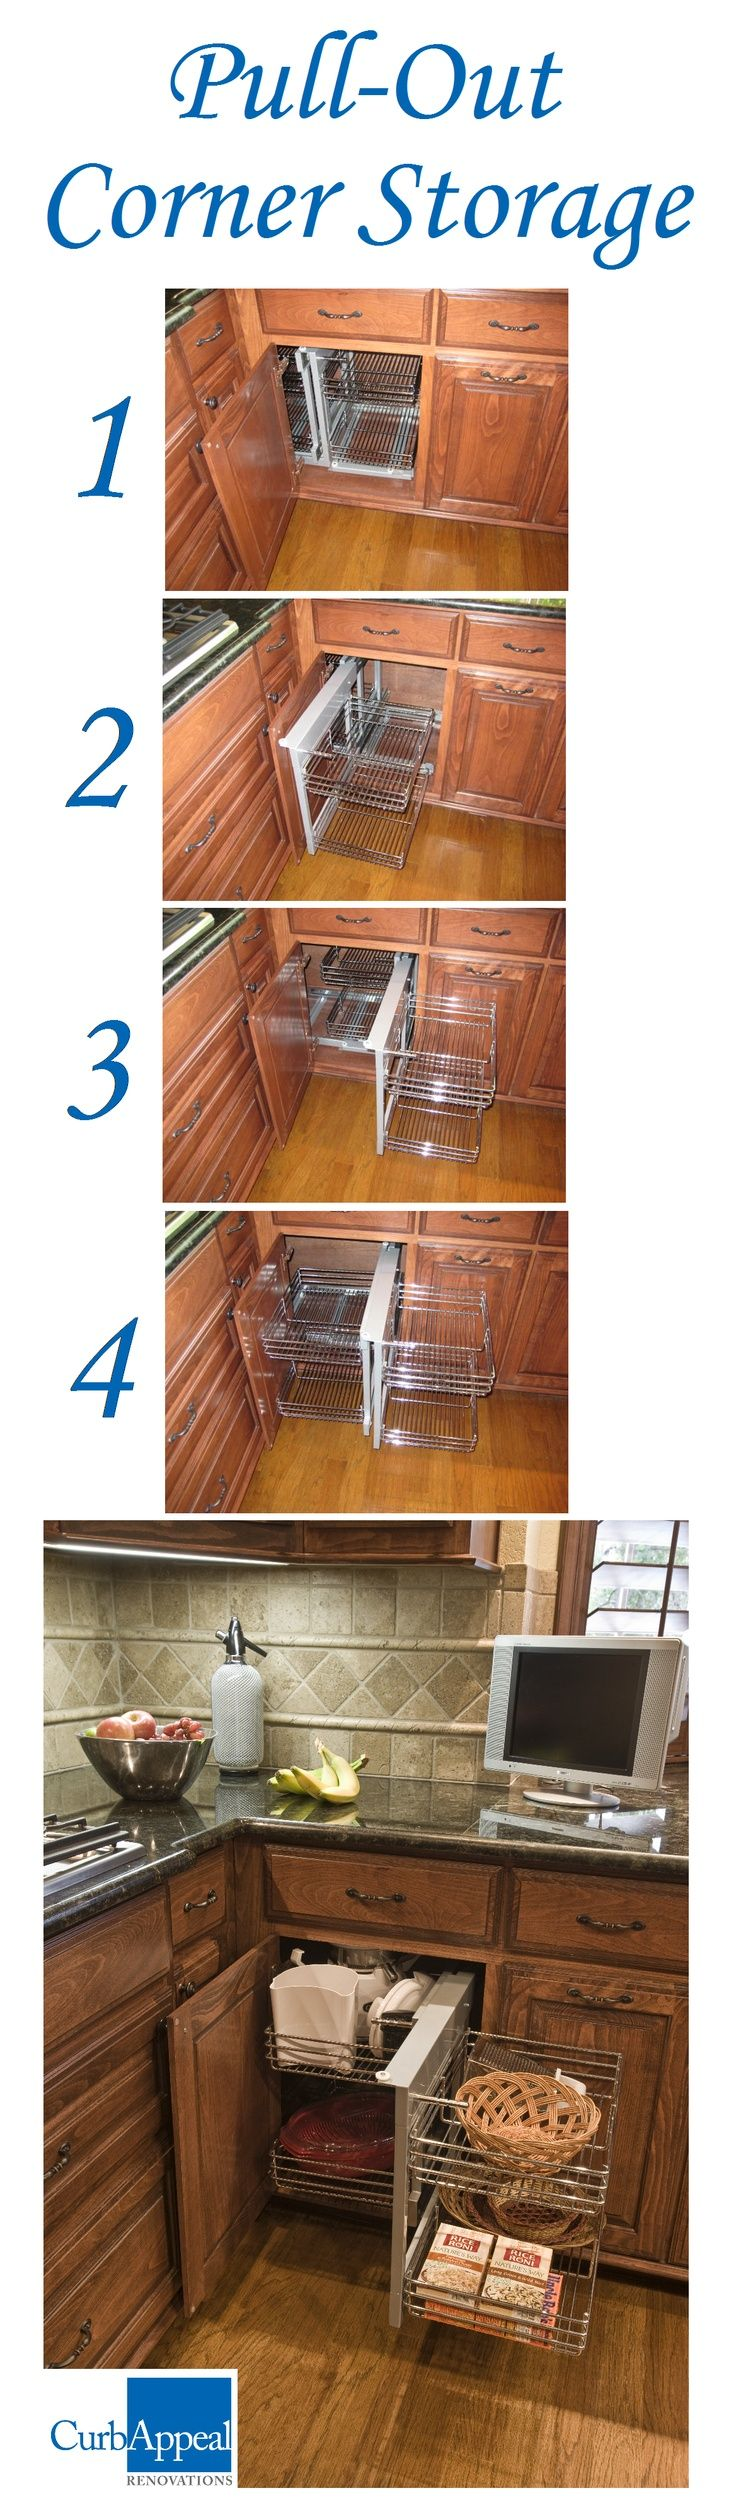 "This corner storage shelving unit helps you maximize storage space in your kitchen! It holds a lot more than a circular ""lazy susan"", and is very easy to glide in and out of the cabinet. /freida/ French - this is PERFECT for your Tupperware cabinet!"